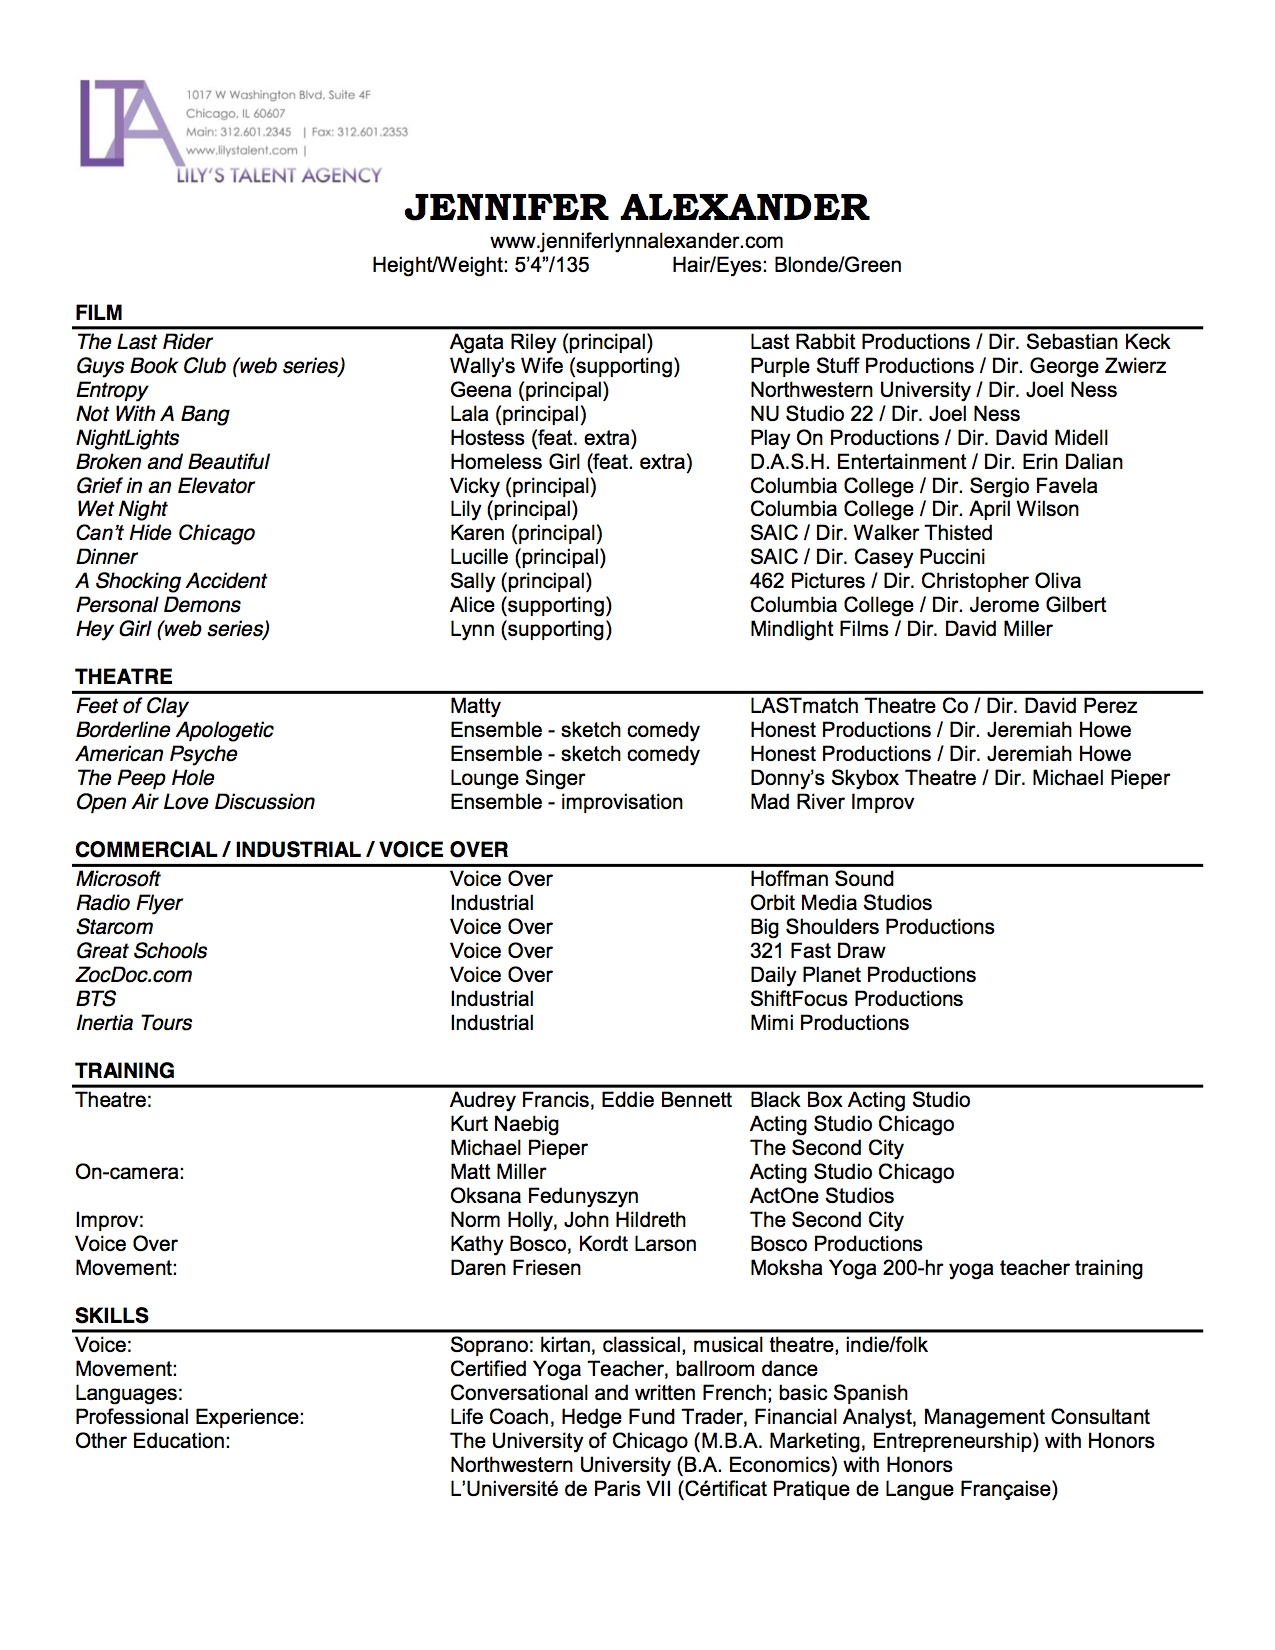 how to create a resume on word service resume how to create a resume on word wordle create resume jennifer alexander actressvoice artist